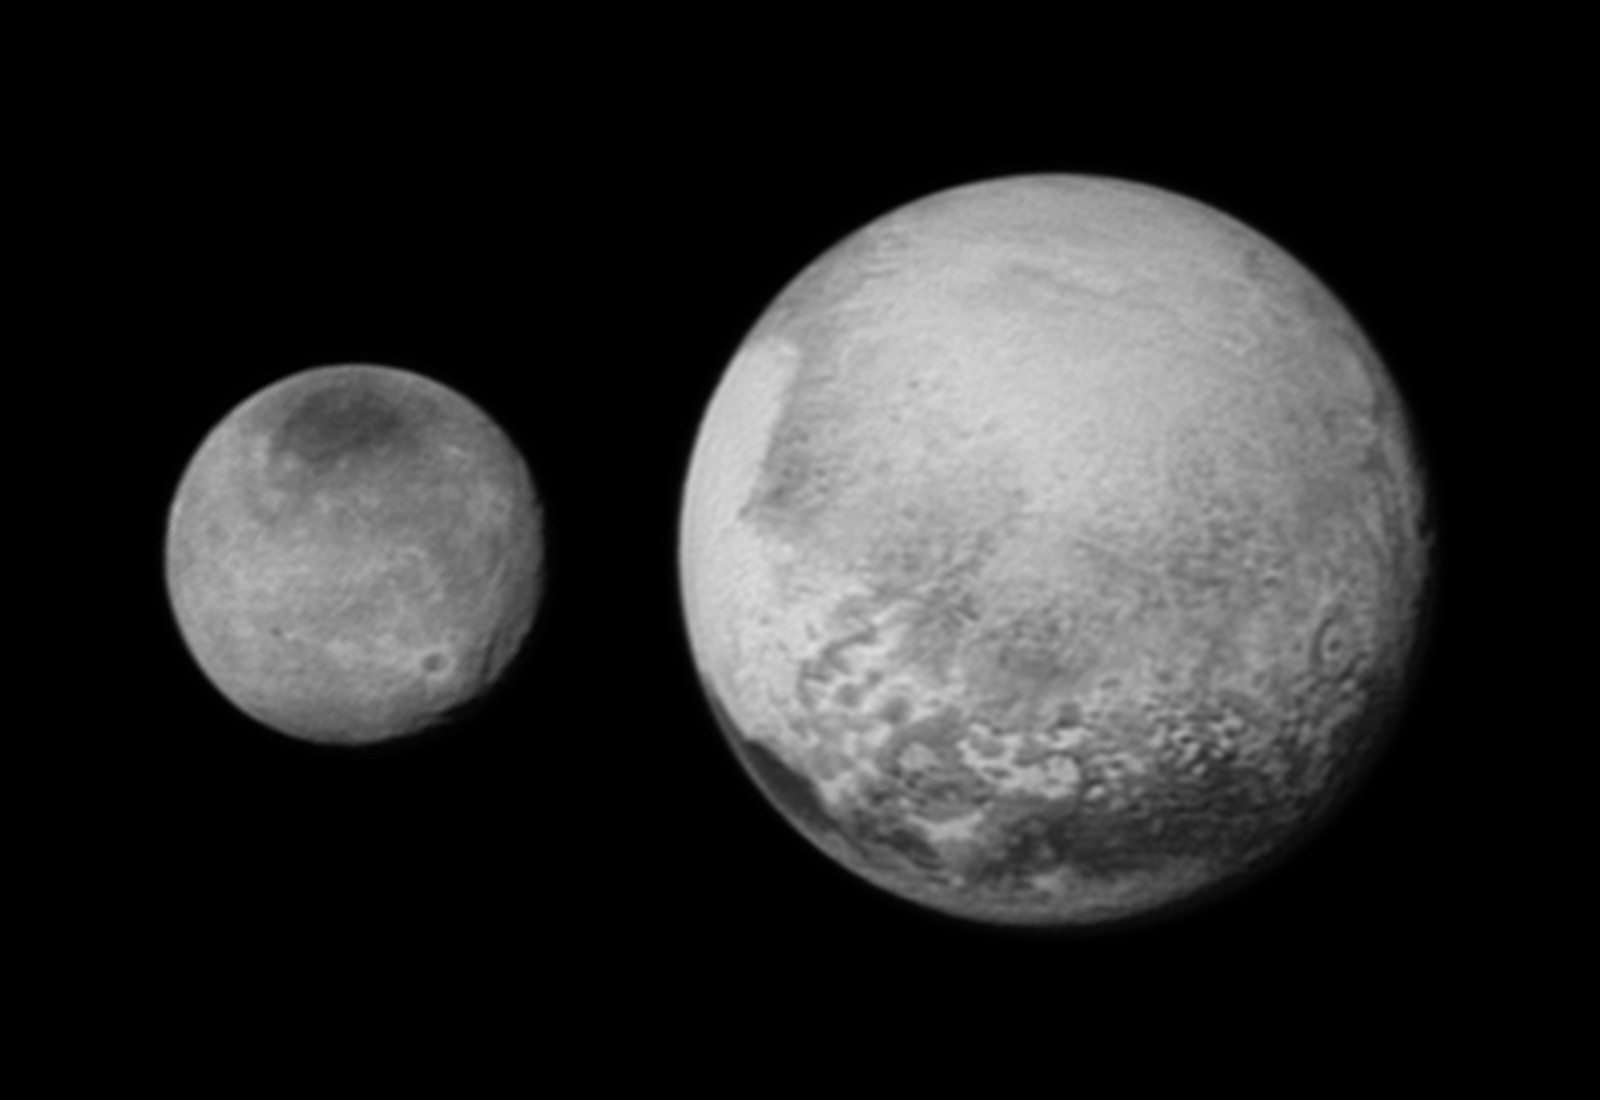 """Pluto (right) and largest moon Charon compared to scale in a composite of separate images taken by New Horizons on 12 July from a distance of 1.6 million miles (2.5 million kilometres). Pluto's bright, mysterious """"heart"""" is rotating into view, the target of the highest-resolution images that will be taken during the spacecraft's closest approach to Pluto on 14 July. The intriguing """"bulls-eye"""" feature at right is rotating out of view, and will not be seen in greater detail. Charon's newly-discovered system of chasms, larger than the Grand Canyon on Earth, rotates out of view in New Horizons' sharpest image yet of the Texas-sized moon. It's trailed by a large equatorial impact crater that is ringed by bright rays of ejected material. In this latest image, the dark north polar region is displaying new and intriguing patterns. Image credits: NASA/JHUAPL/SWRI."""